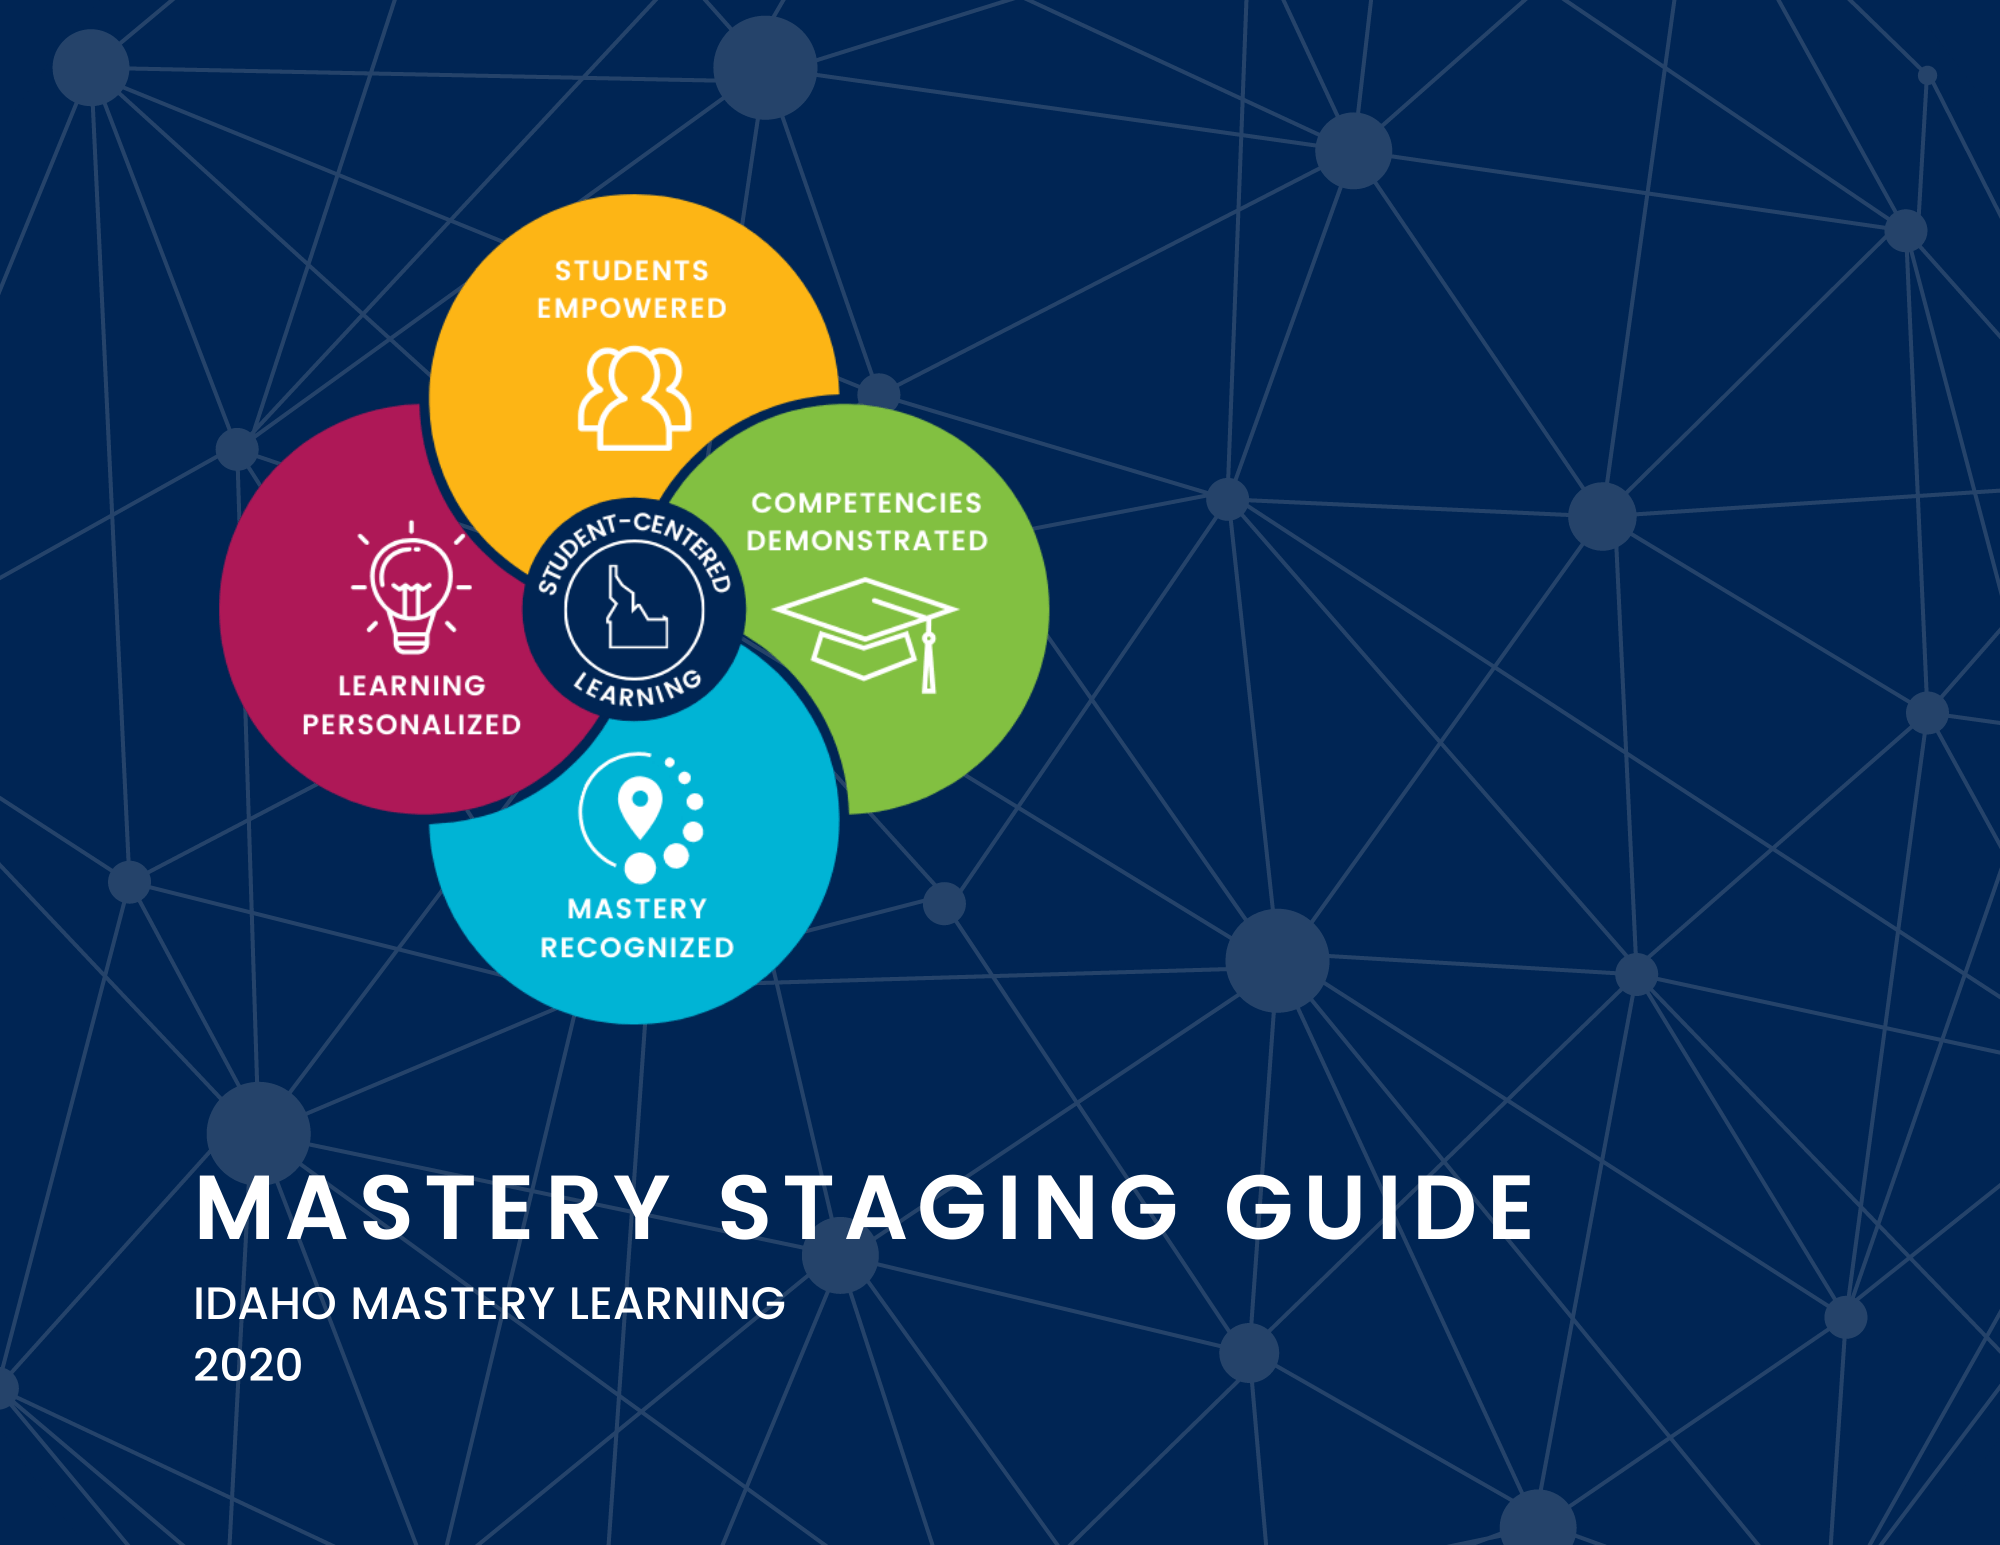 Idaho Mastery Learning Staging Guide